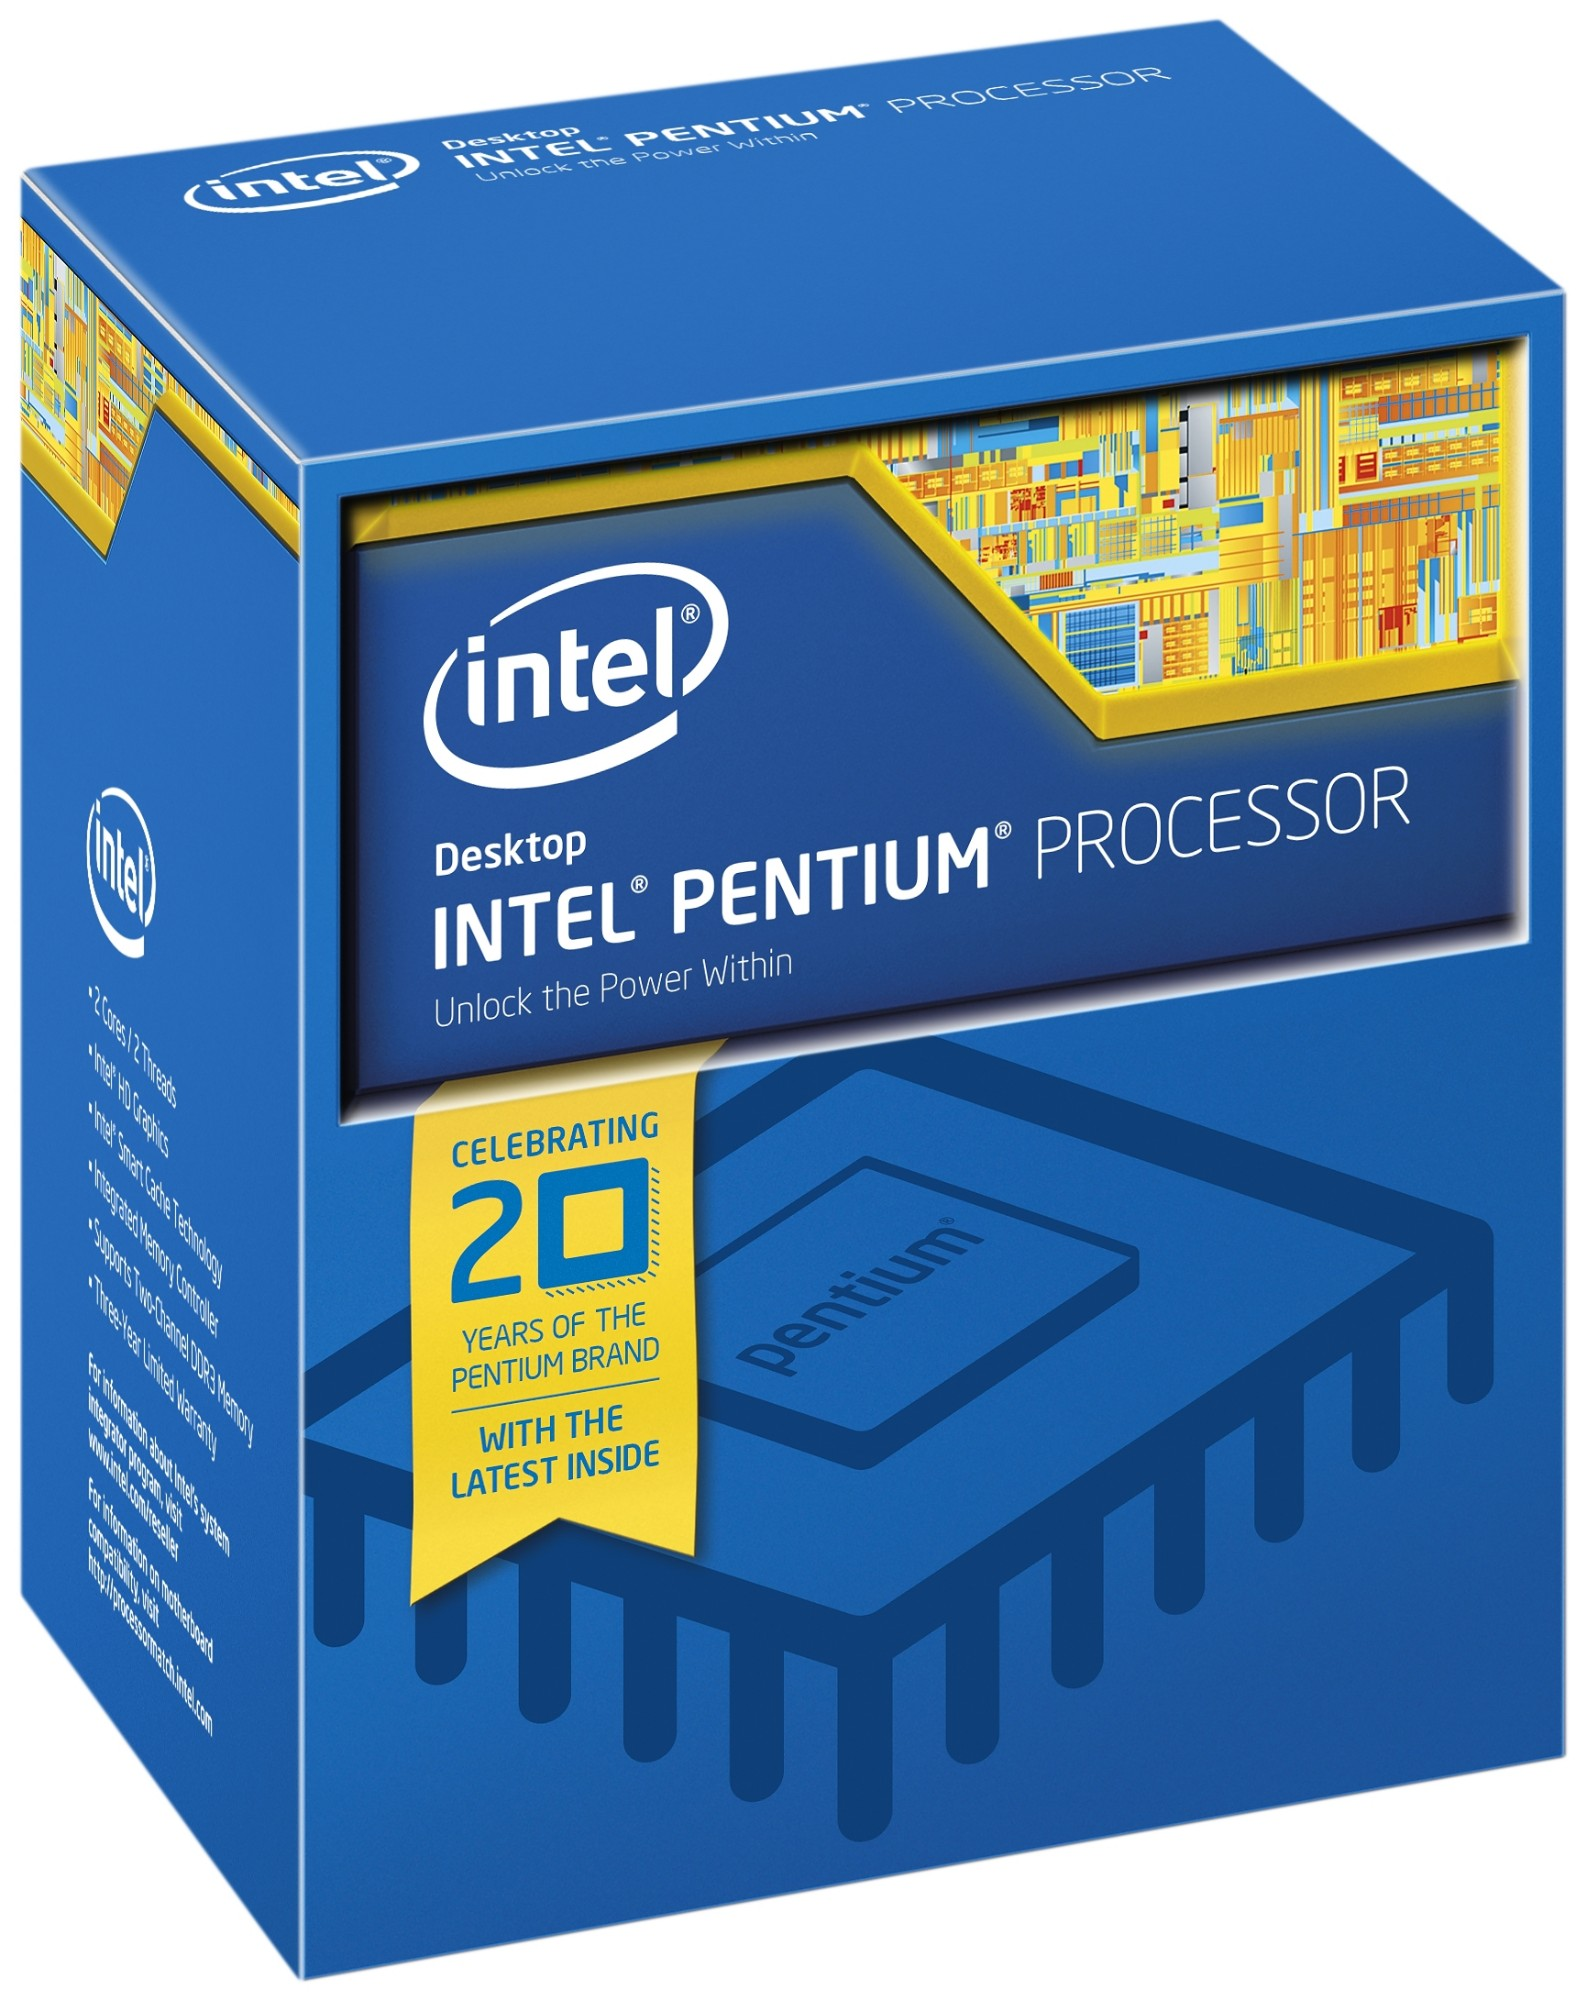 Intel Pentium ® ® Processor G4520 (3M Cache, 3.60 GHz) 3.6GHz 3MB Smart Cache Box processor